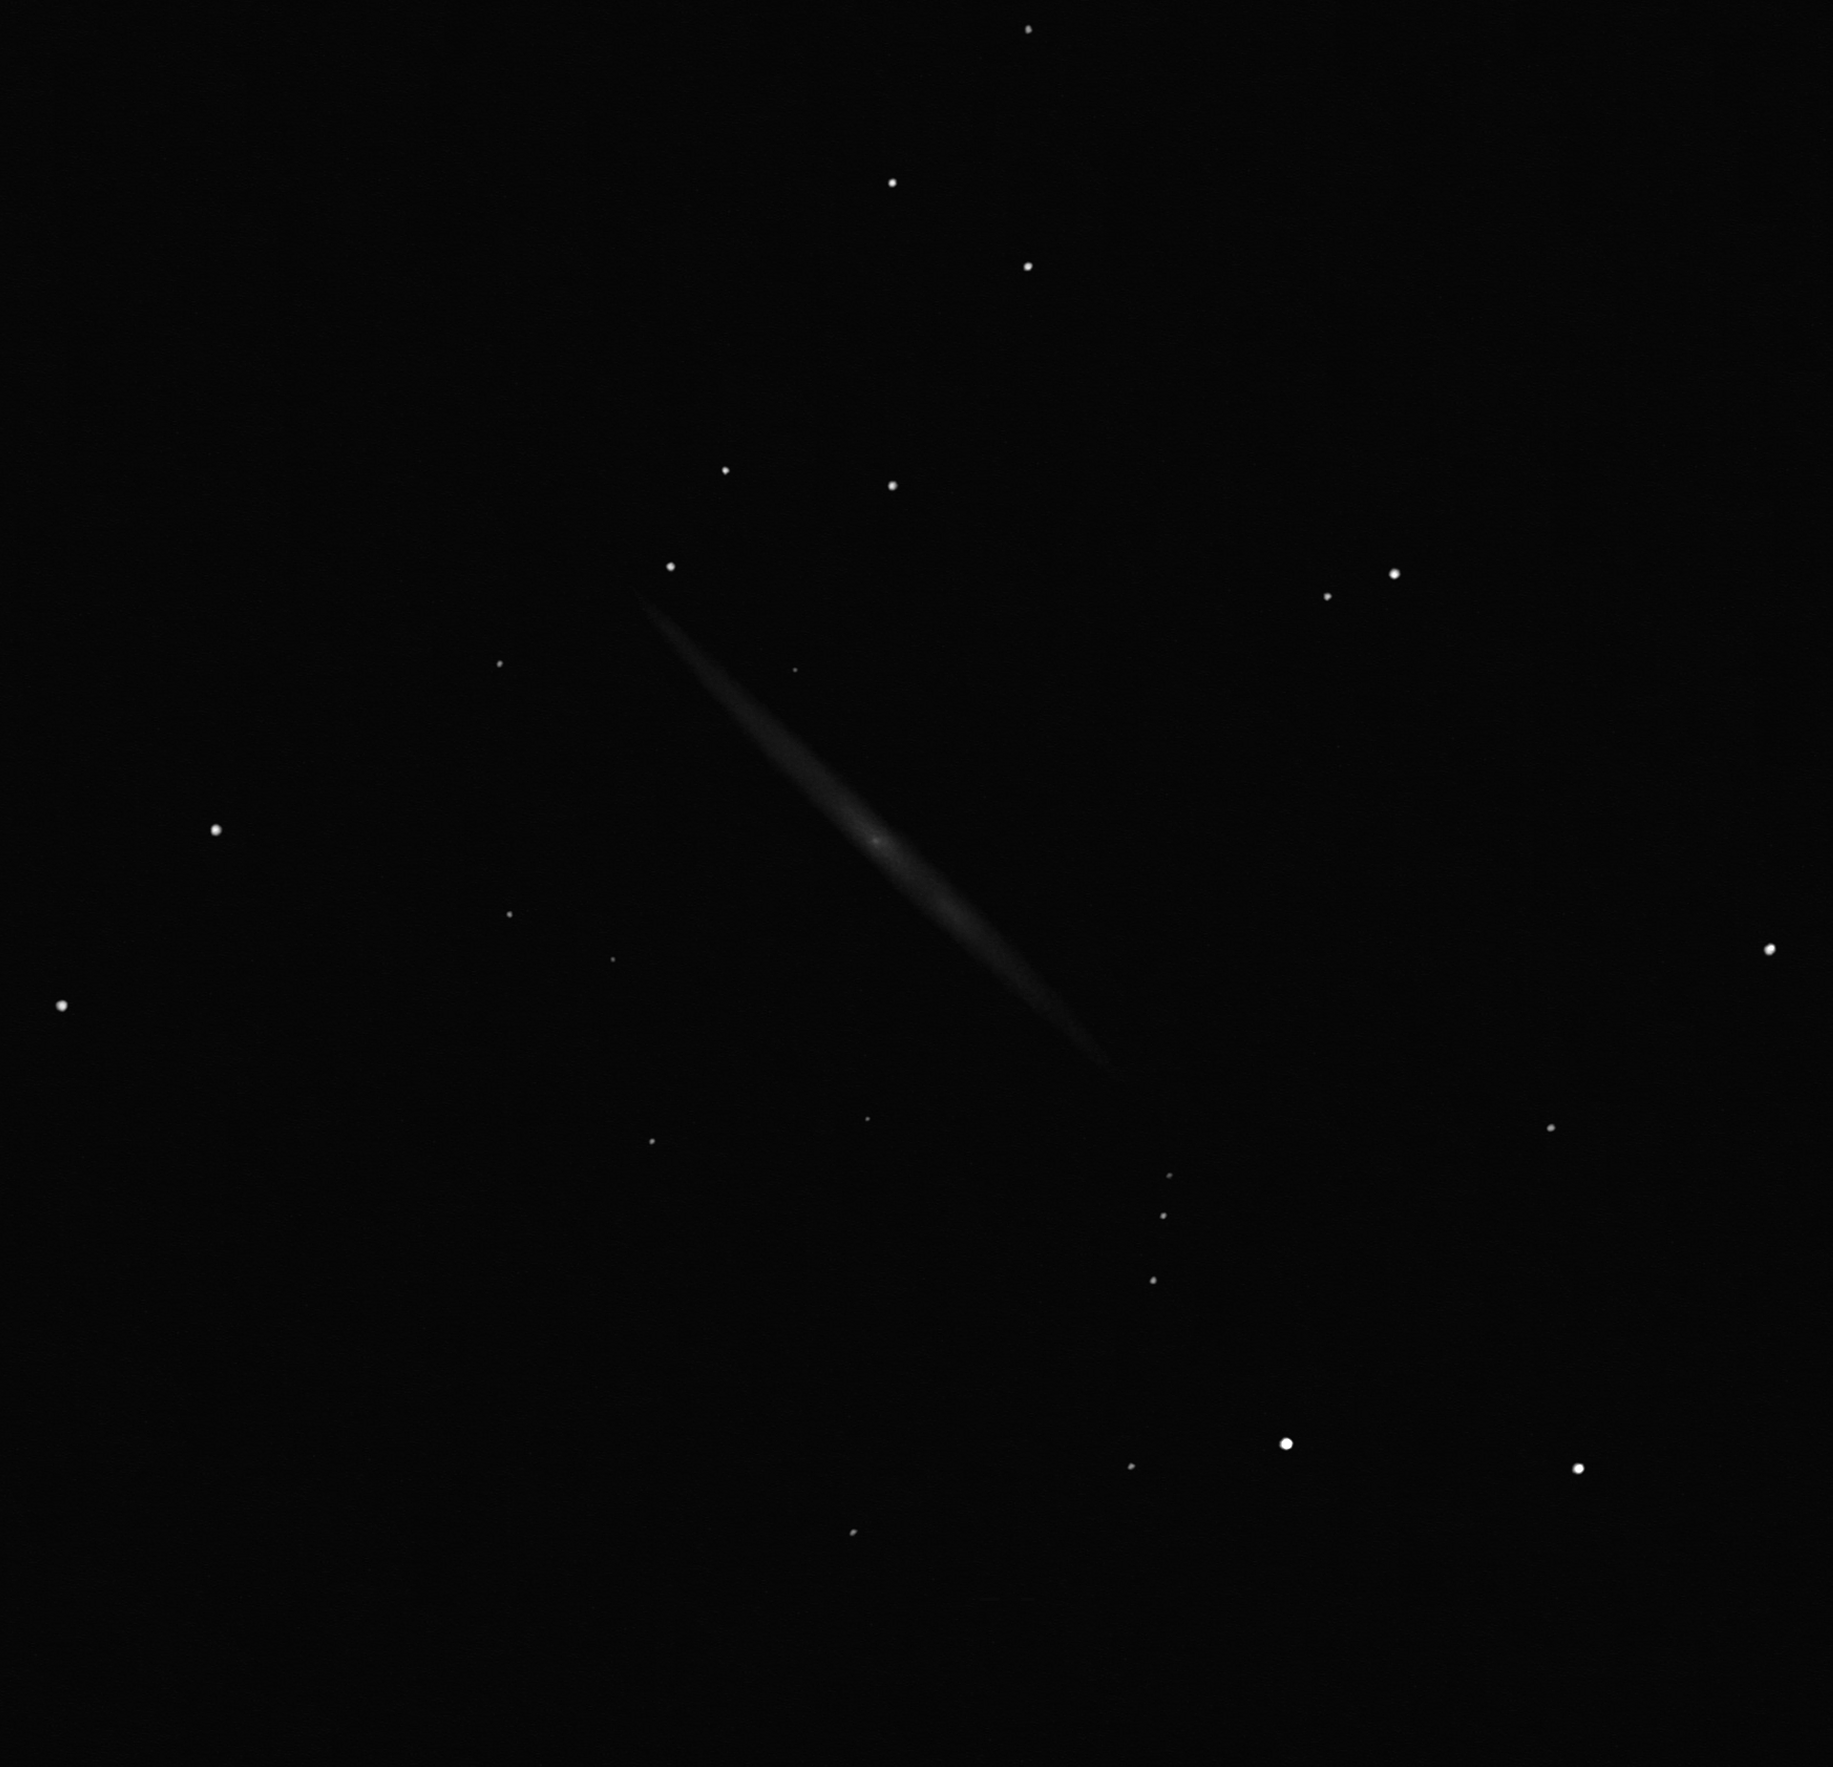 ngc4244-T381-md3b.png